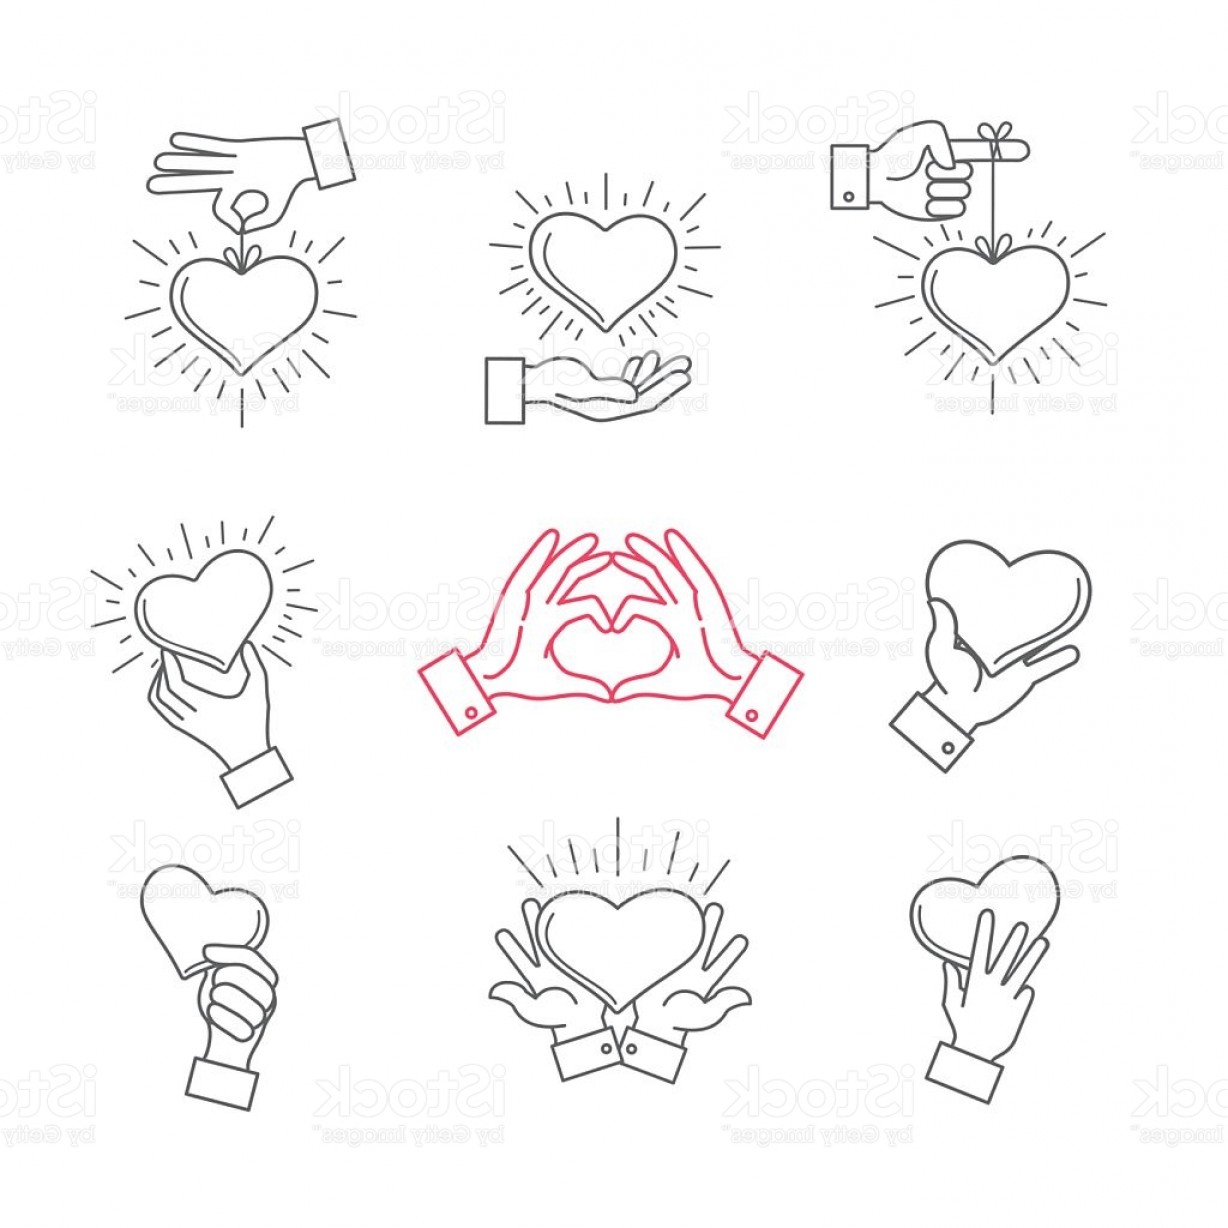 Sign Shapes Vector Art: Lined Hand Love Signs Vector Hands Making Heart Shape Gm